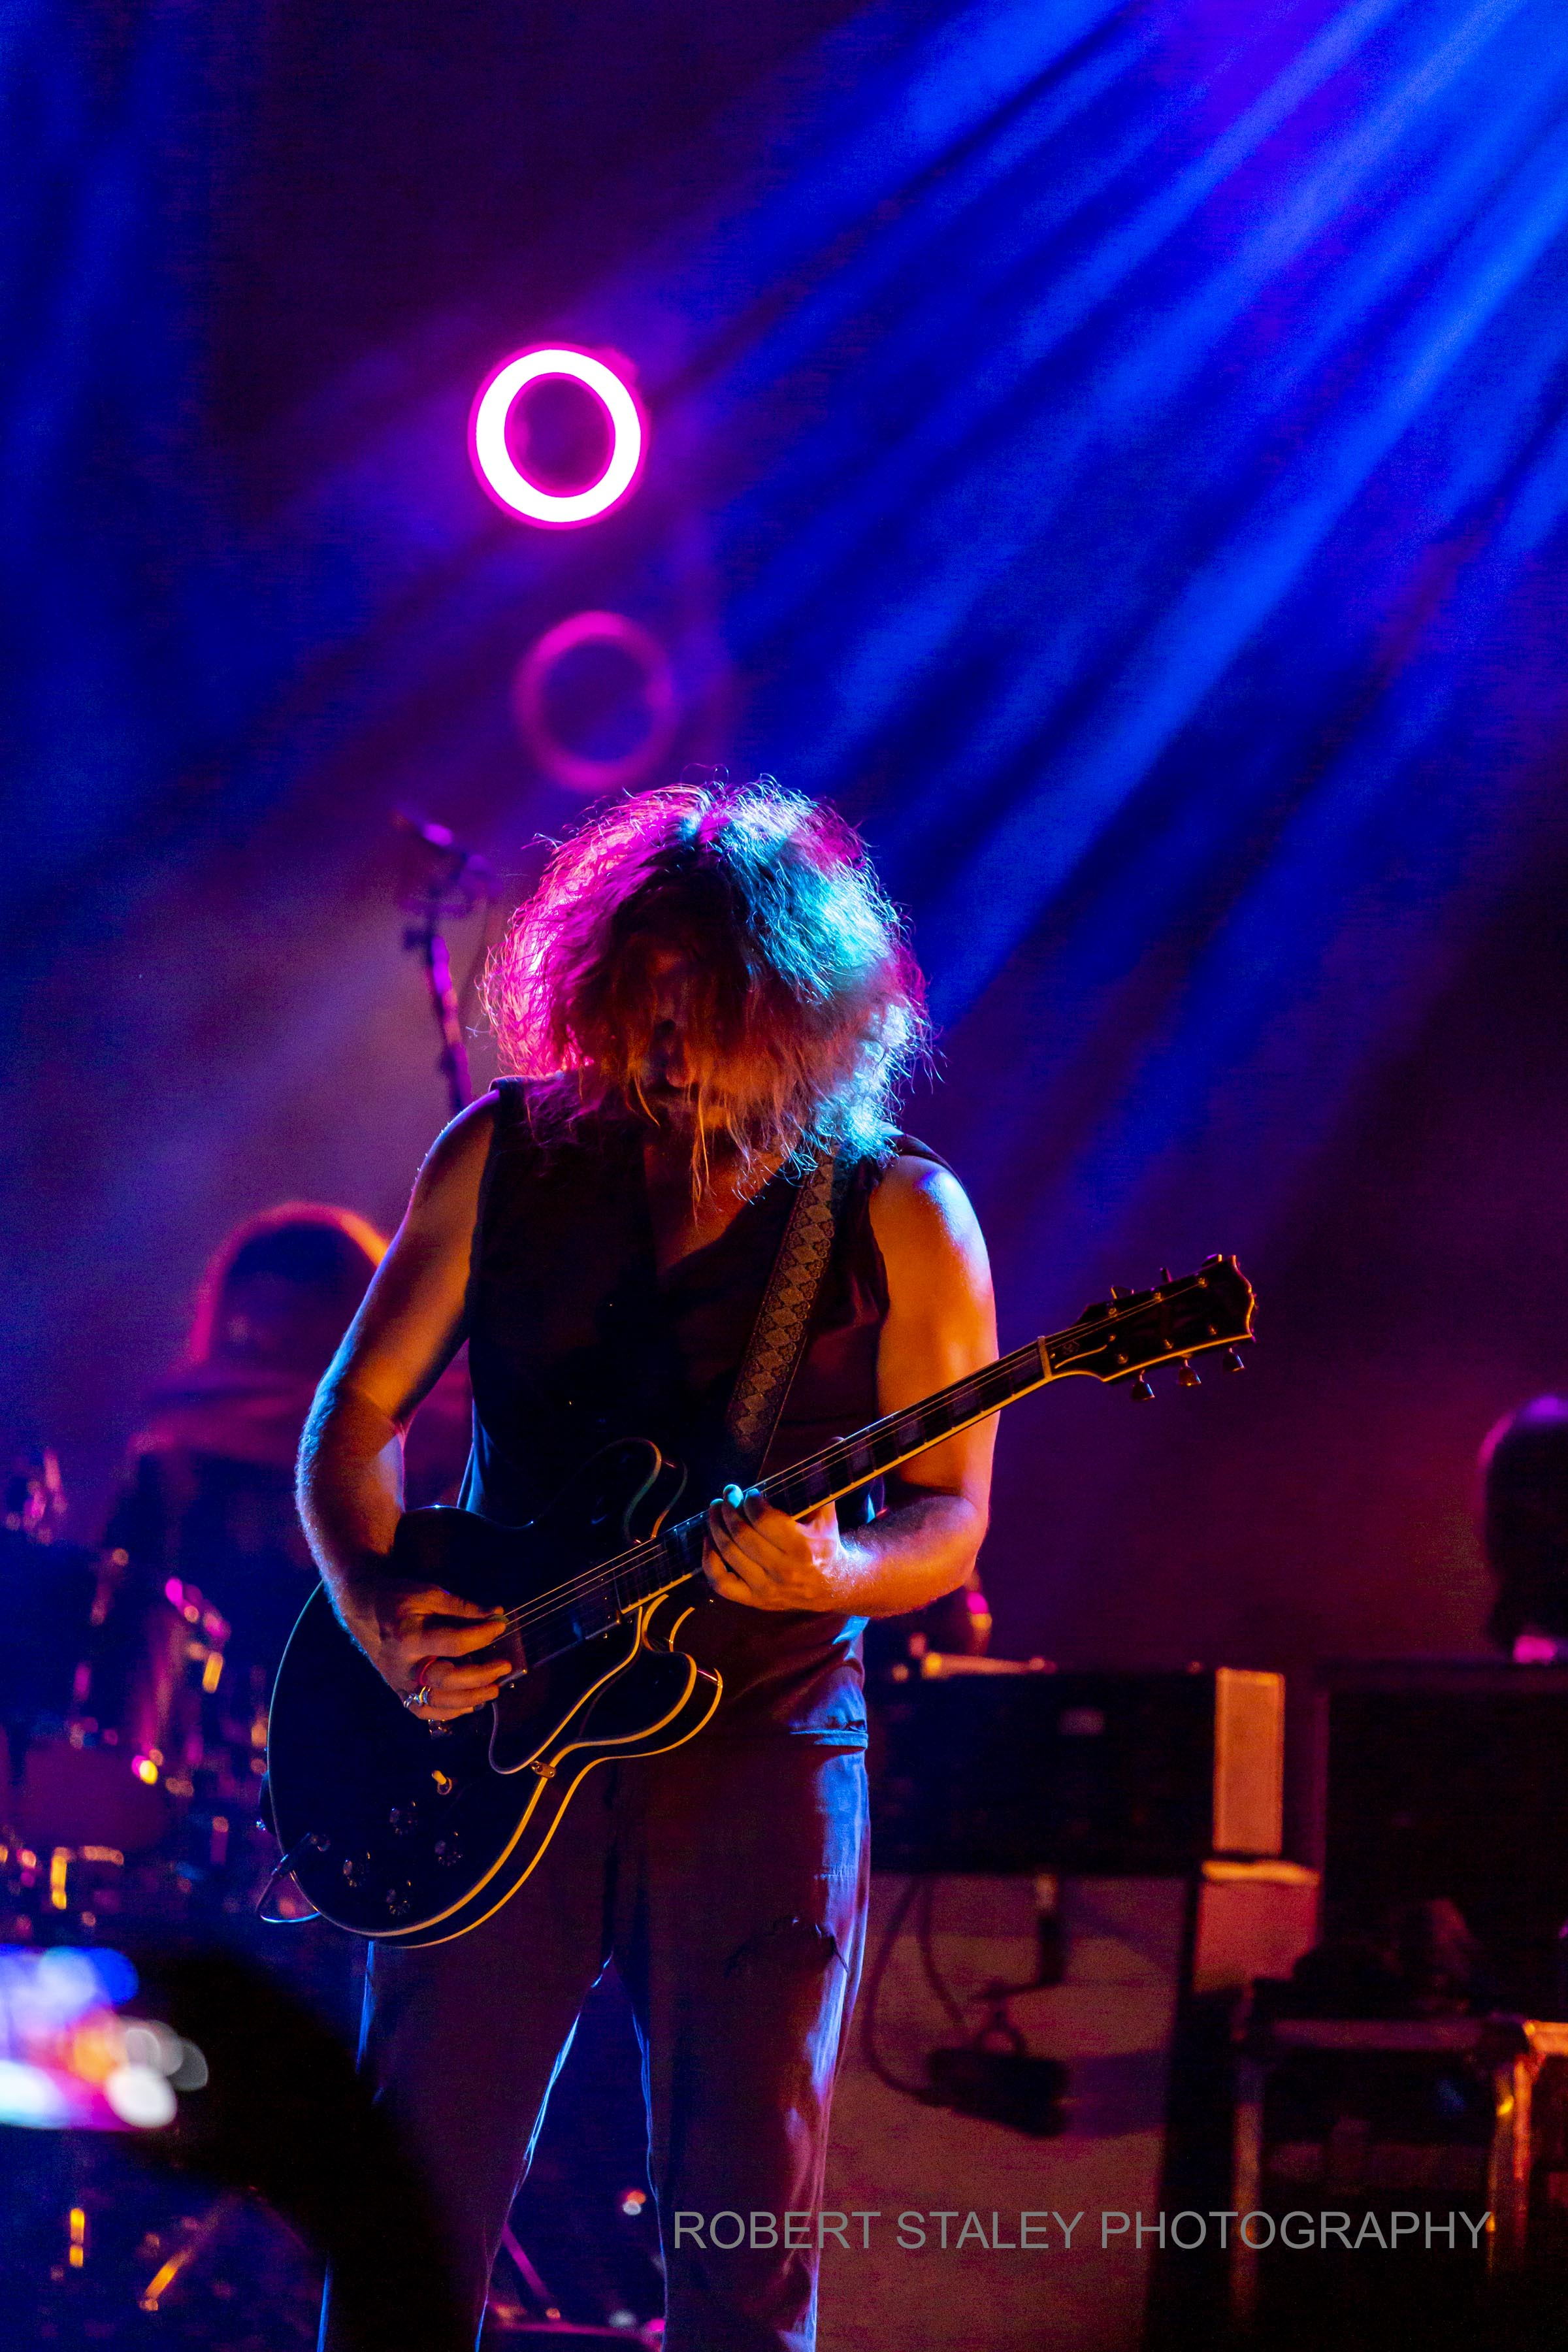 2019_07_02_jim_james_anaheim_hob-129.jpg